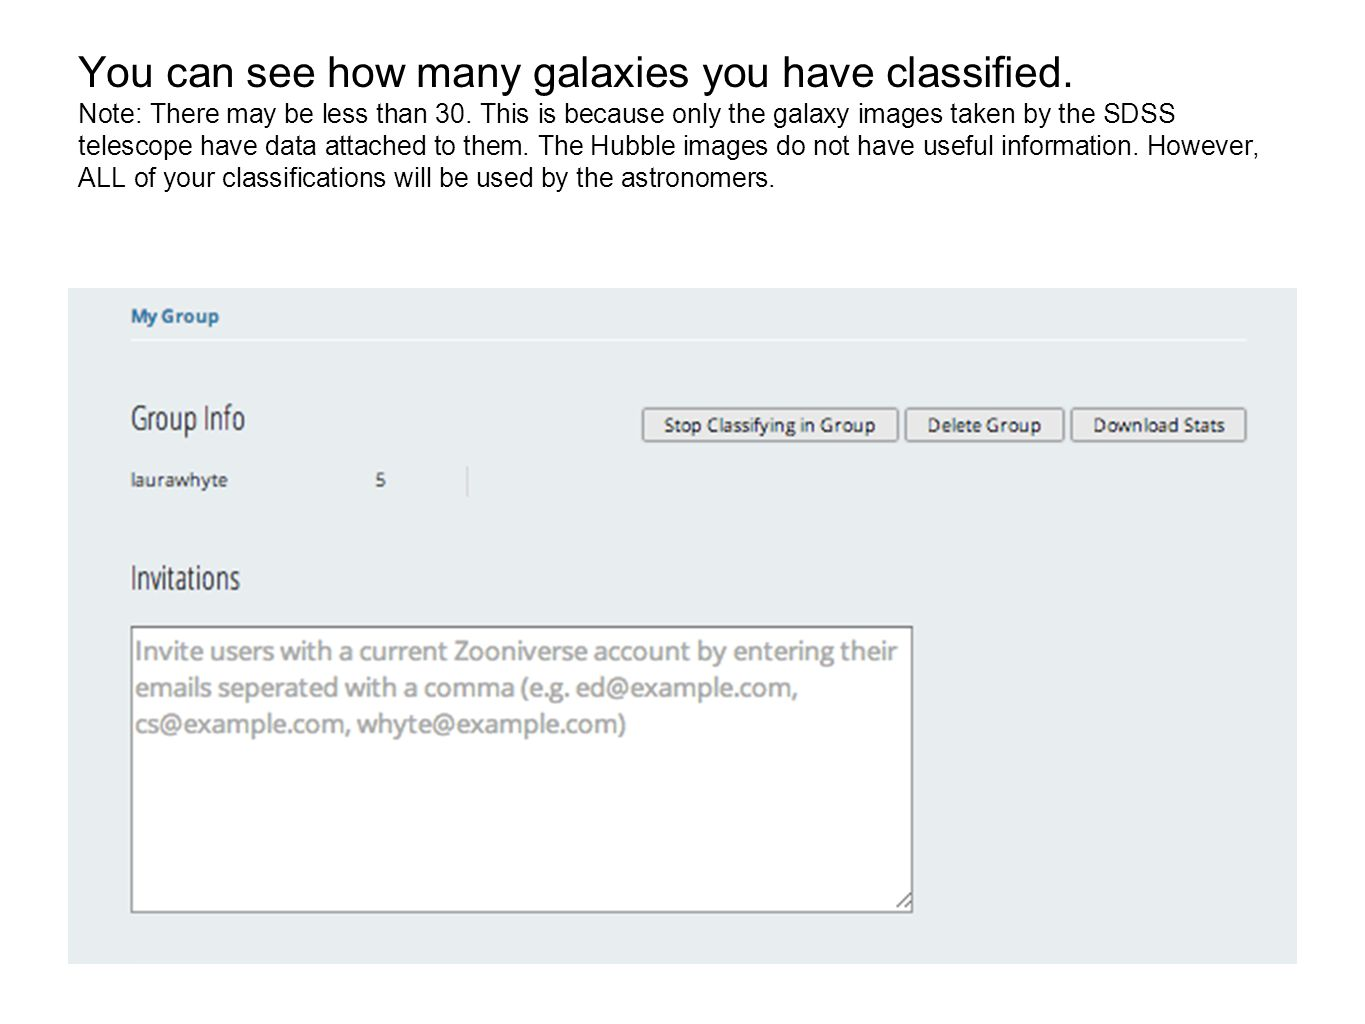 You can see how many galaxies you have classified.